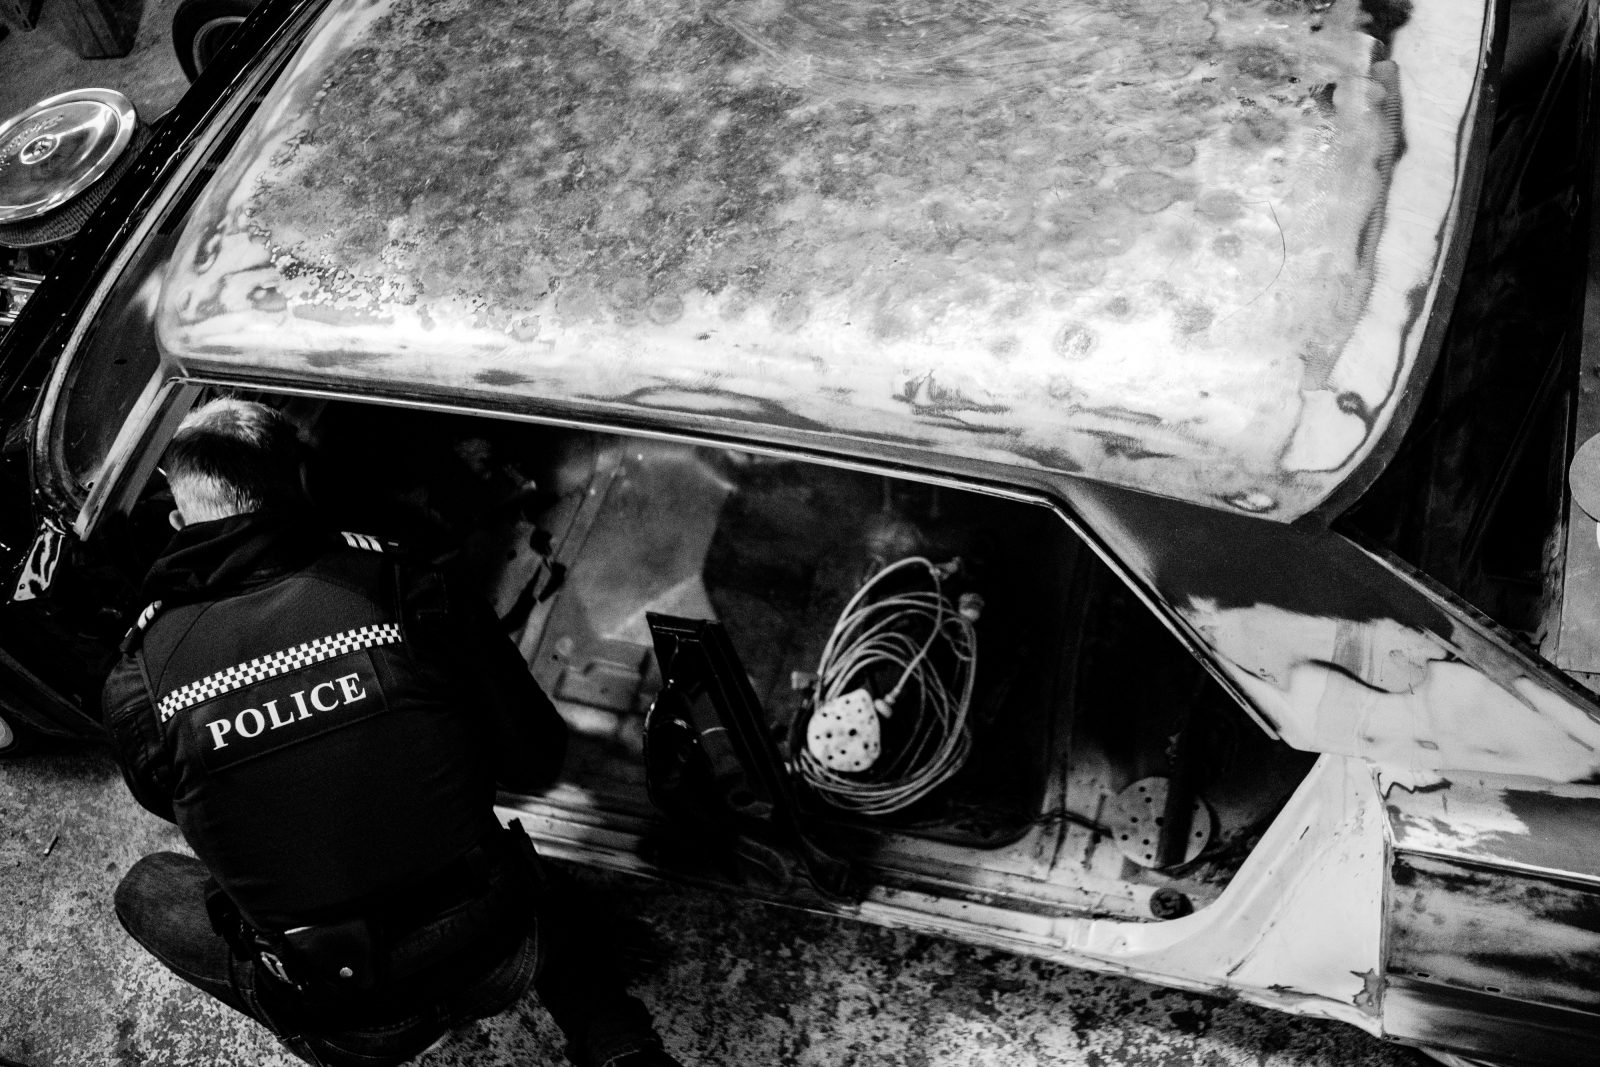 Leaving no stone unturned, an officer searches a business address in Wellington for drugs and articles that might identify criminal associates. There is a penalty of six months in prison for possession of methamphetamine and/or a $1000 fine. Possession of five grams of methamphetamine (a teaspoon) is enough to warrant a conviction for supply, which carries a penalty of life imprisonment.